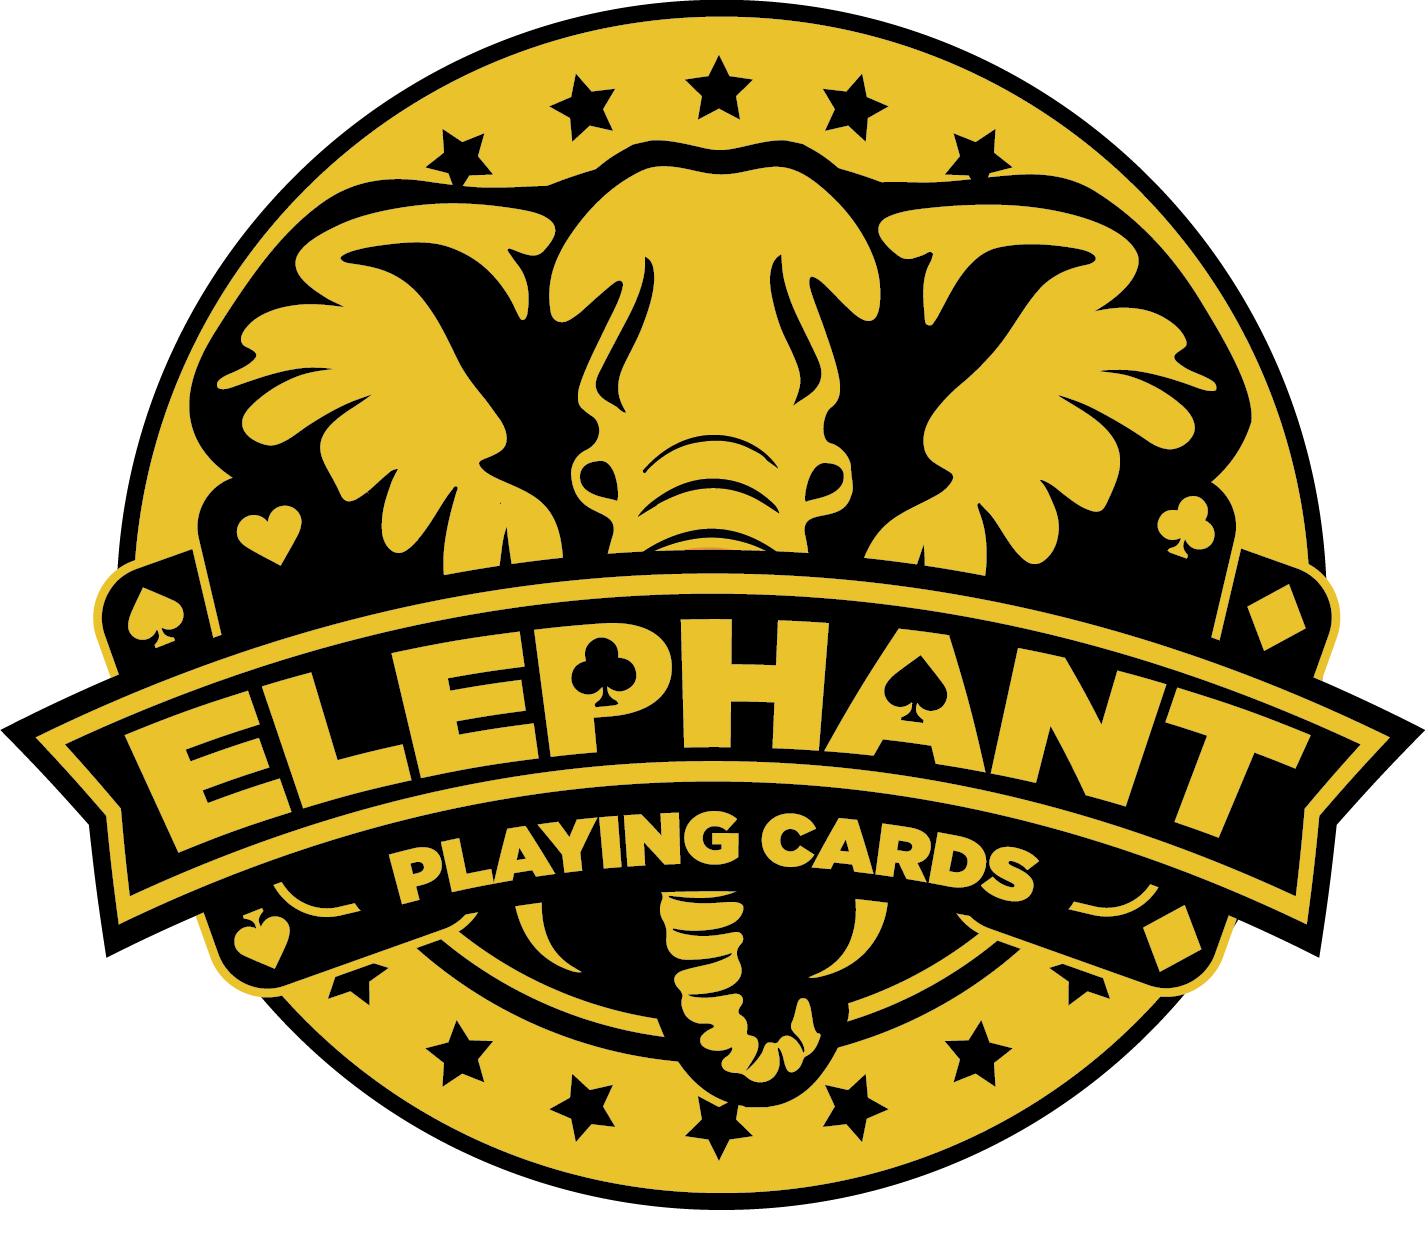 Elephant Playing Cards Explores The Impact of the Digital Age on Interpersonal Relationships